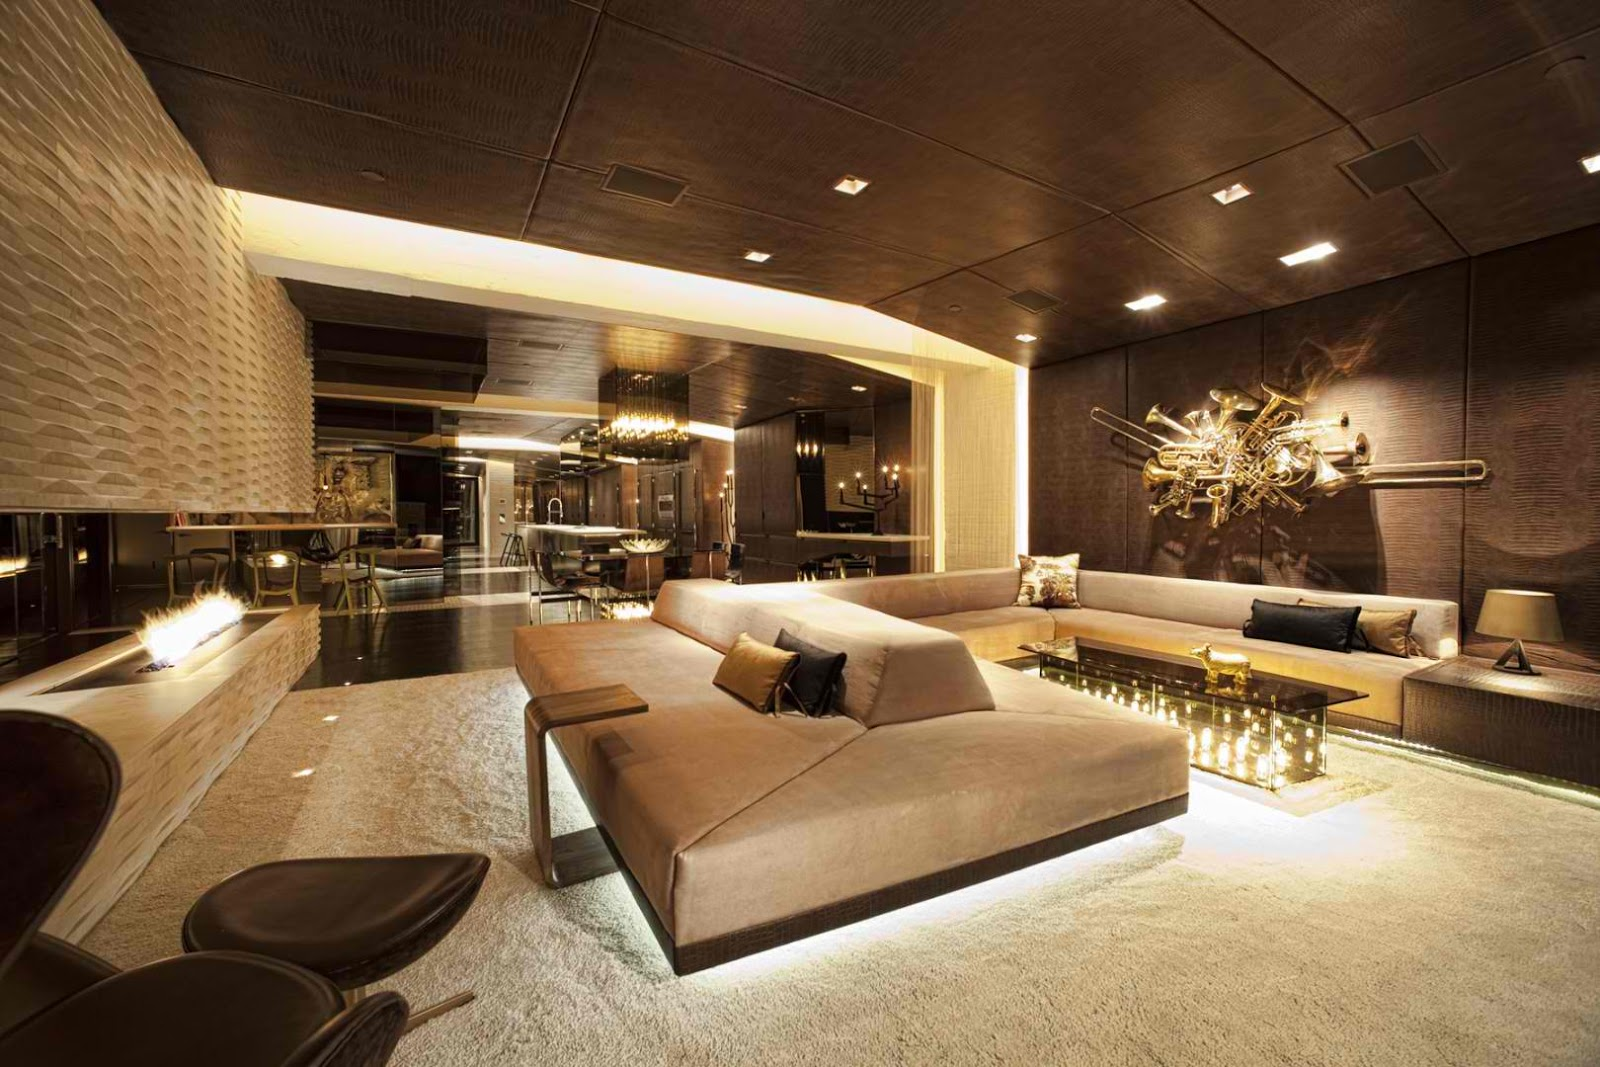 40 luxurious interior design for your home Architects and interior designers